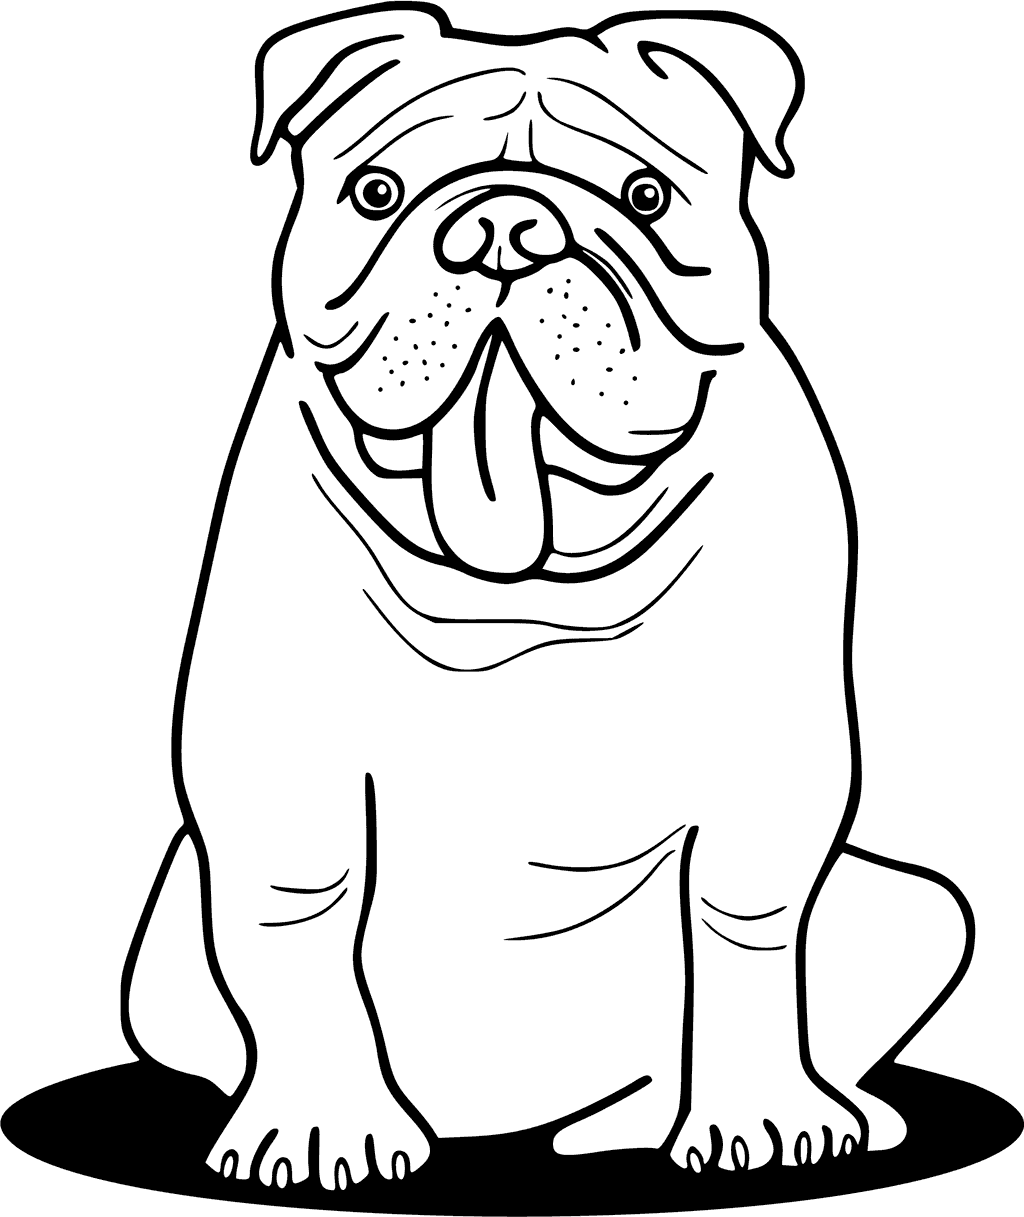 Bulldog Drawing Easy At Getdrawings